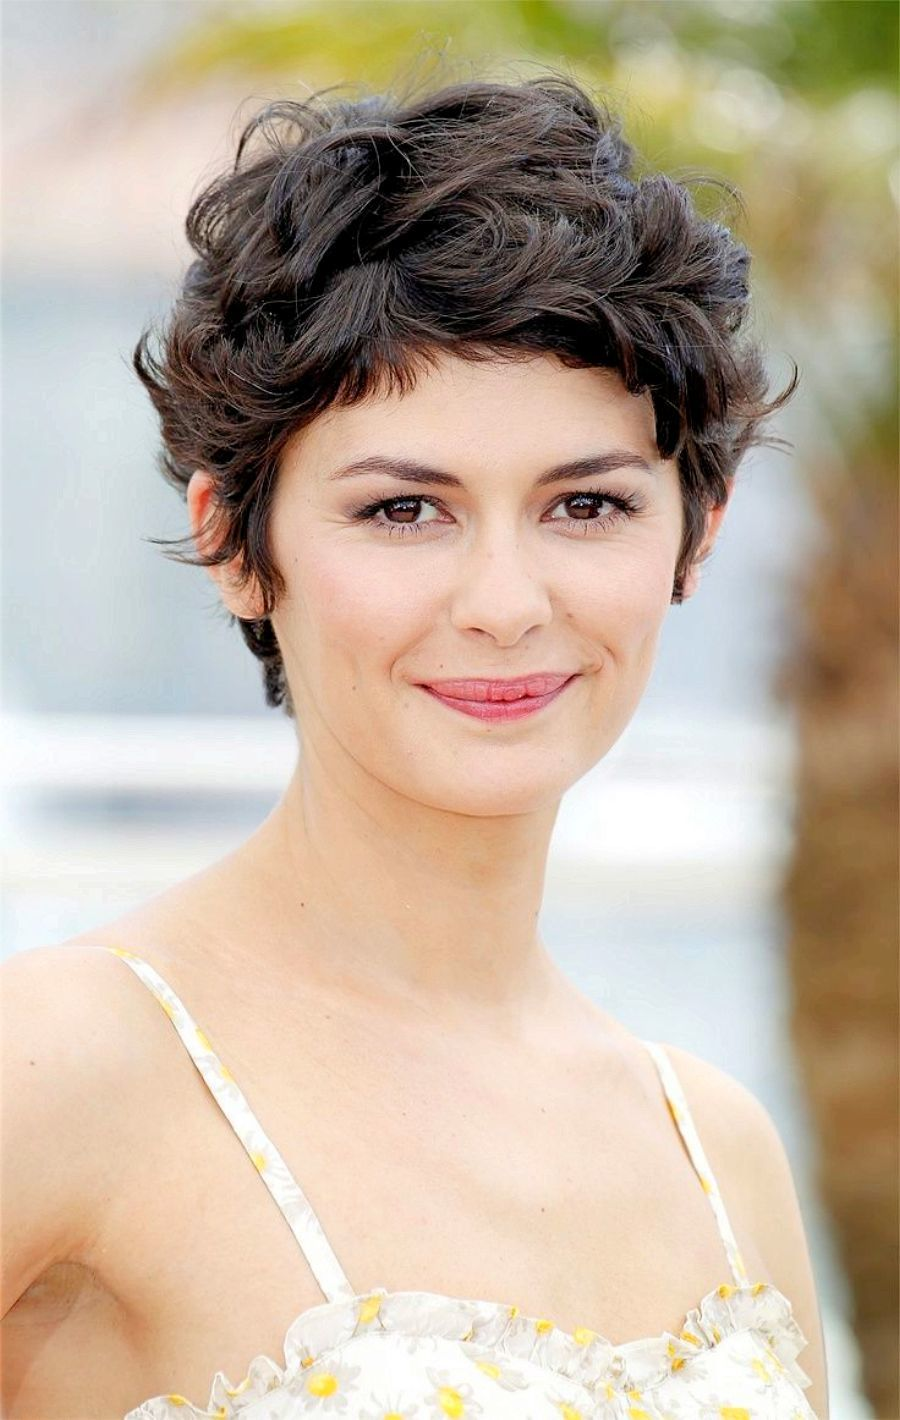 Hairstyles super short curly hair styles super short wavy